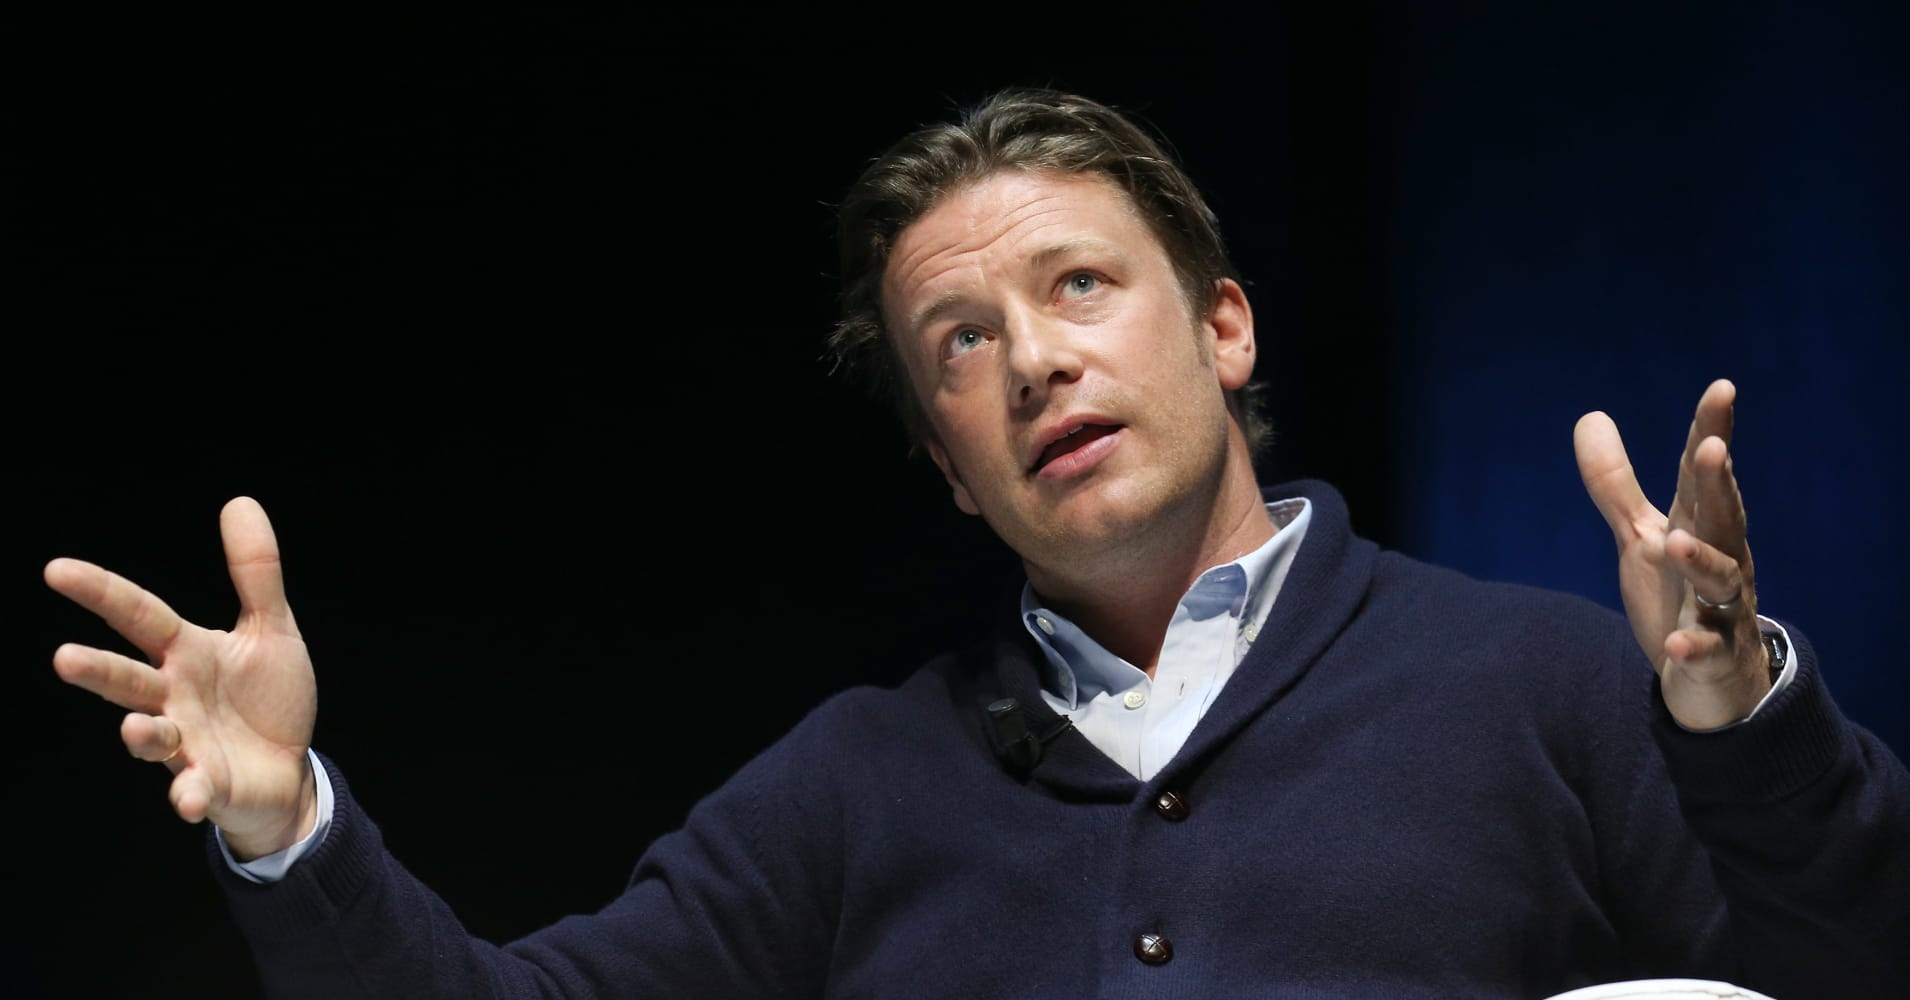 Chef and businessman Jamie Oliver  speaks onstage at the Edelman seminar  during the Cannes Lions International Festival of Creativity on June 23, 2015 in Cannes, France.